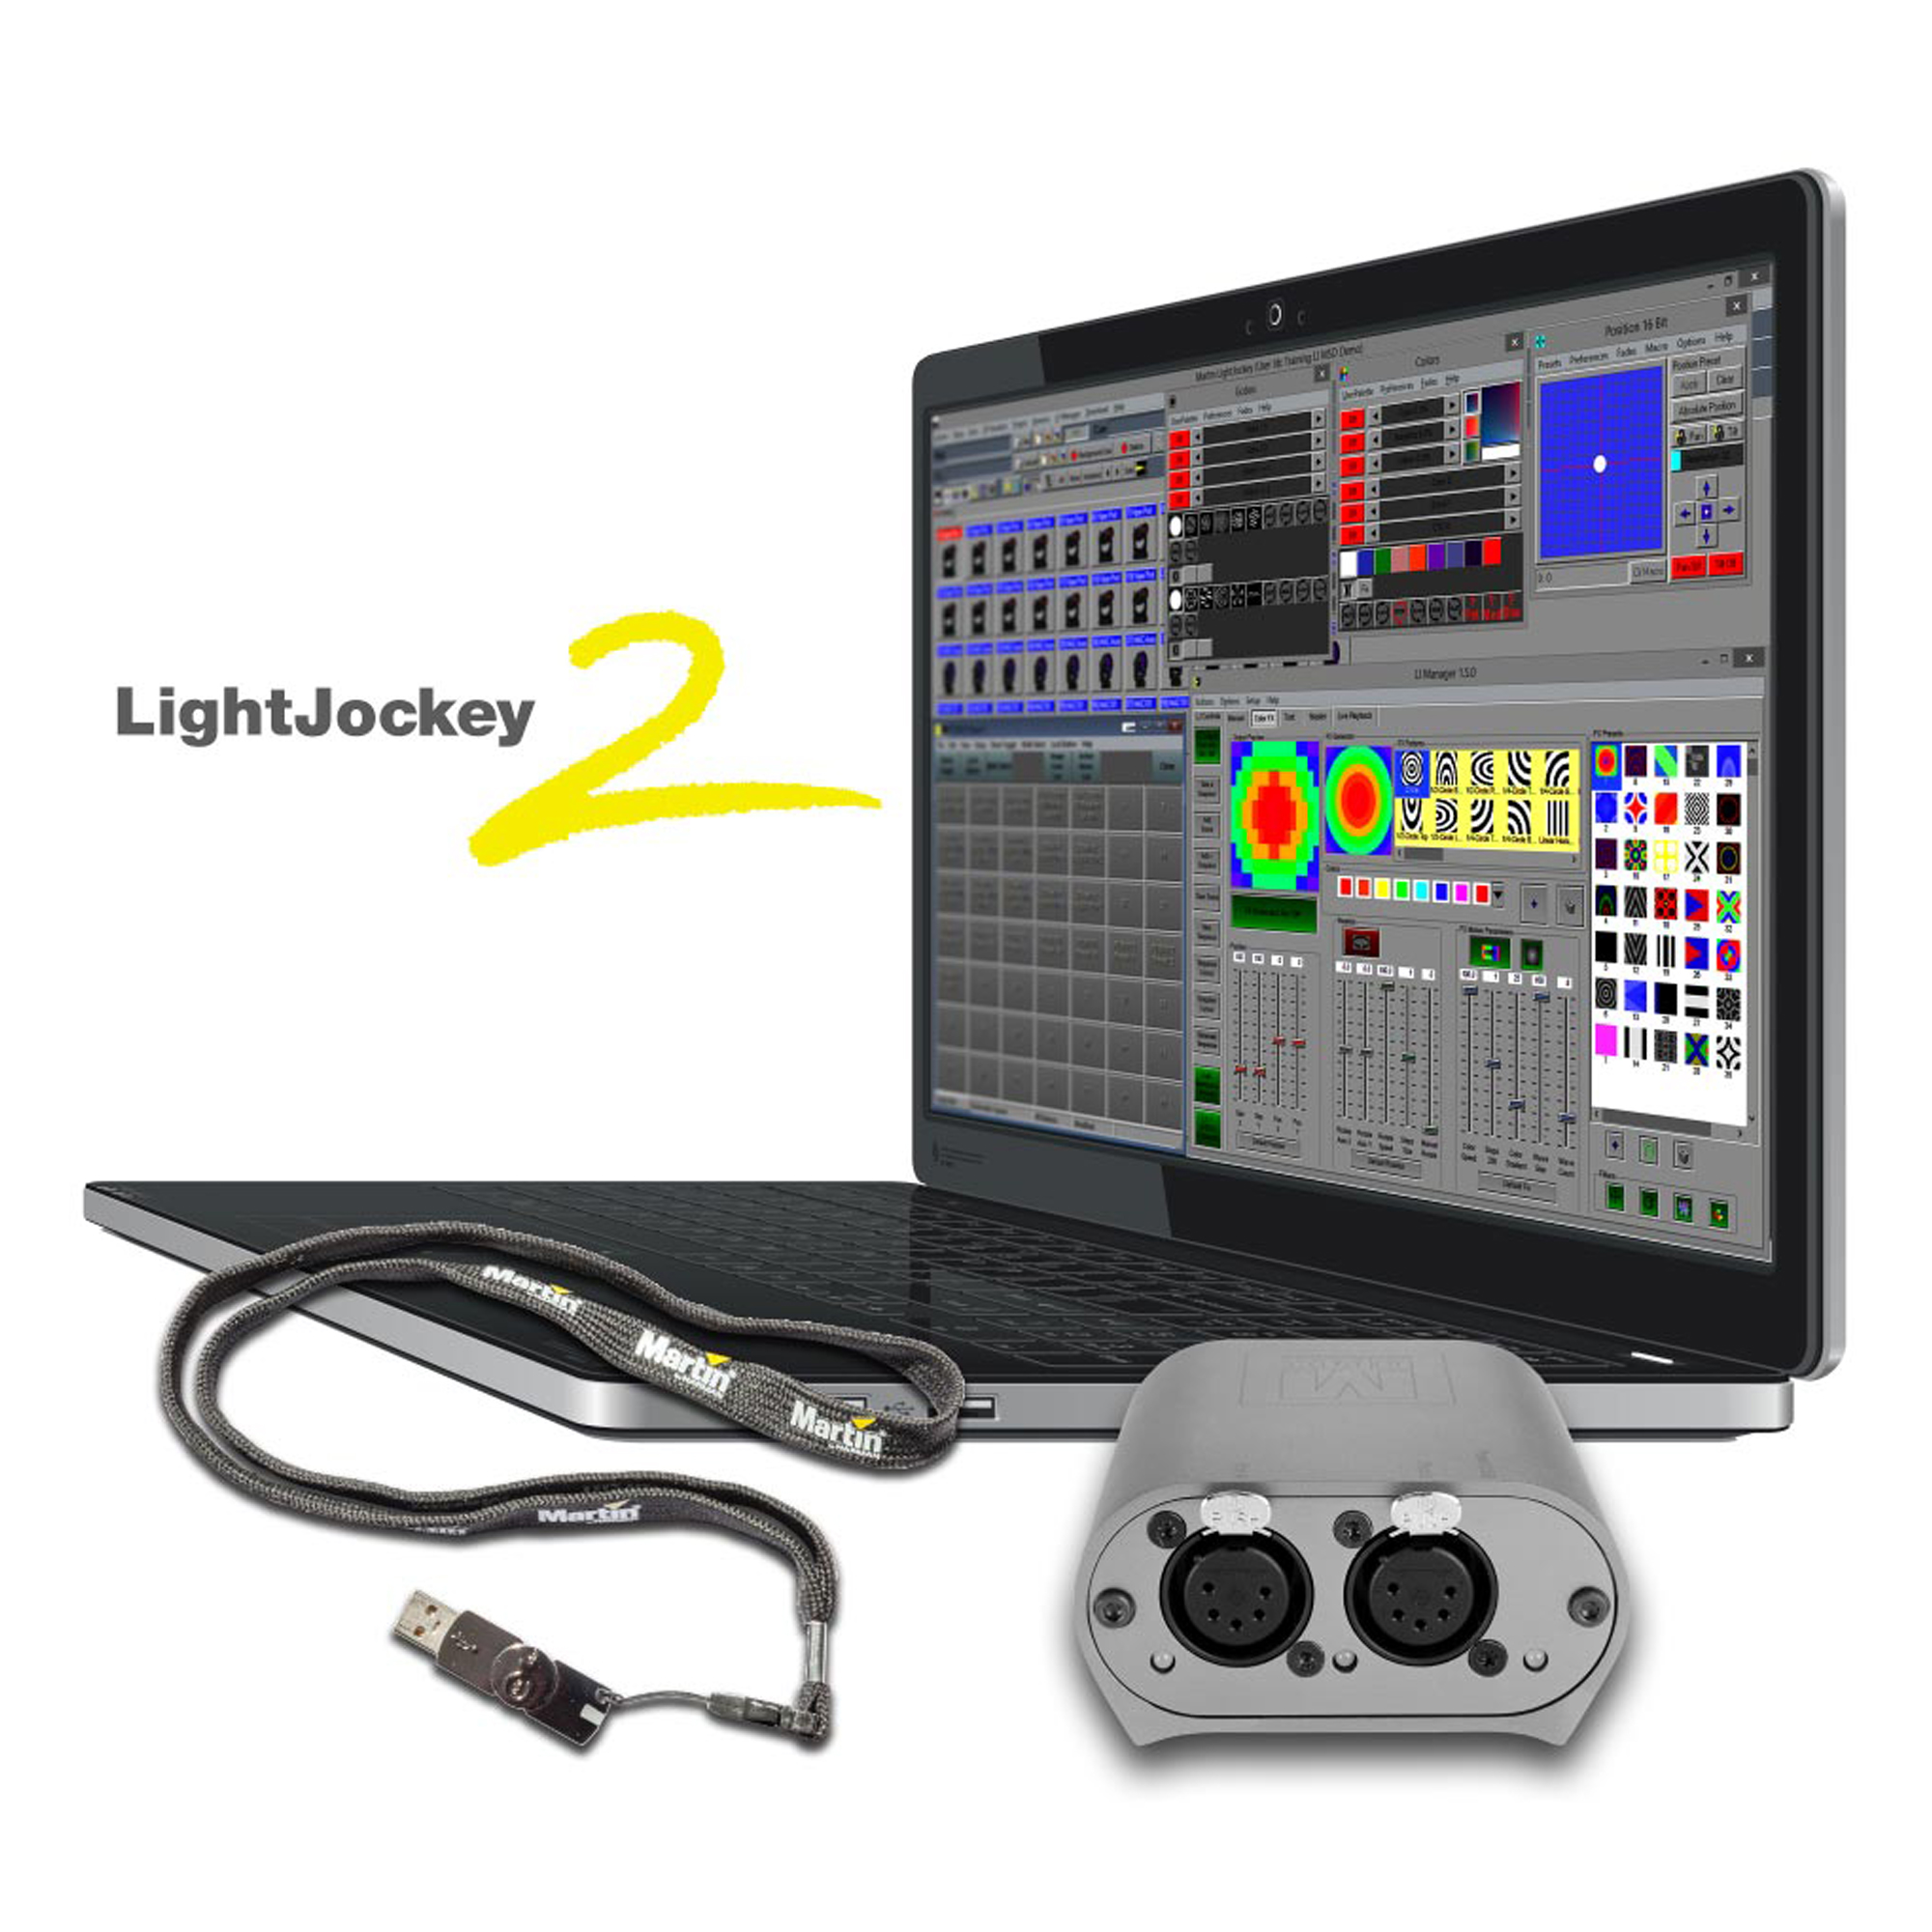 LightJockey 2